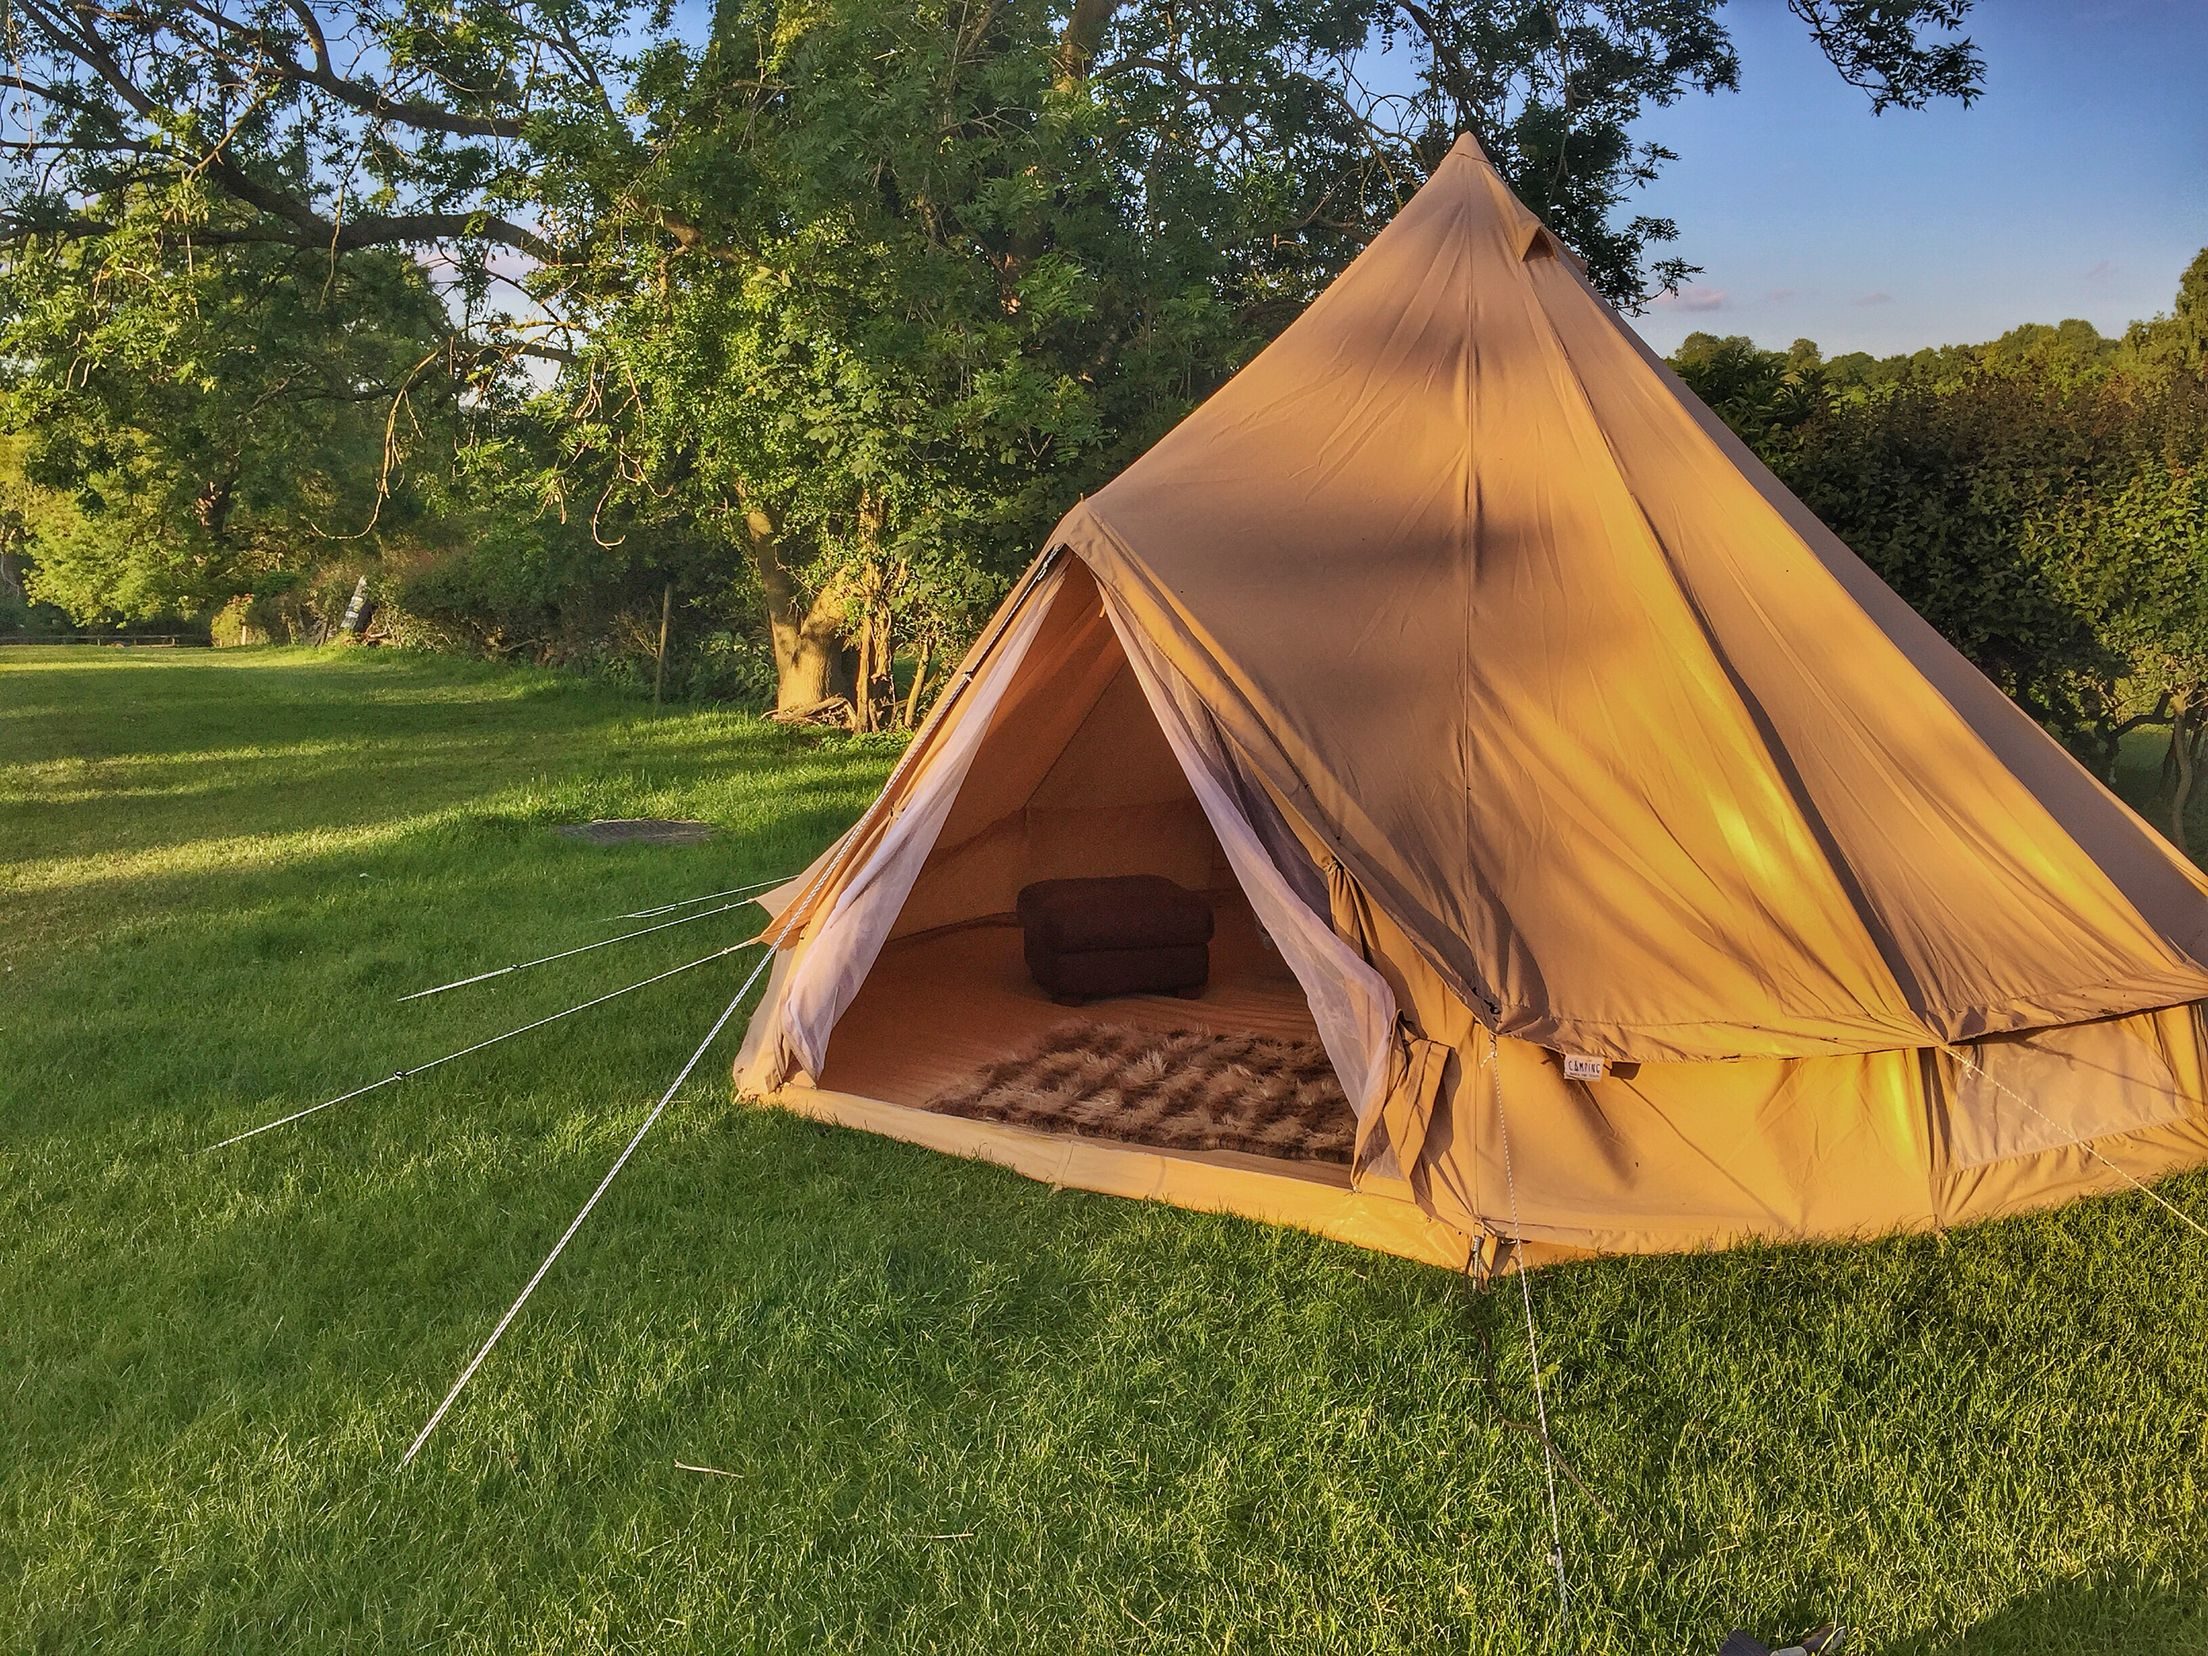 The outside of the Bell Tent & The outside of the Bell Tent | Home Location Gallery | Pinterest